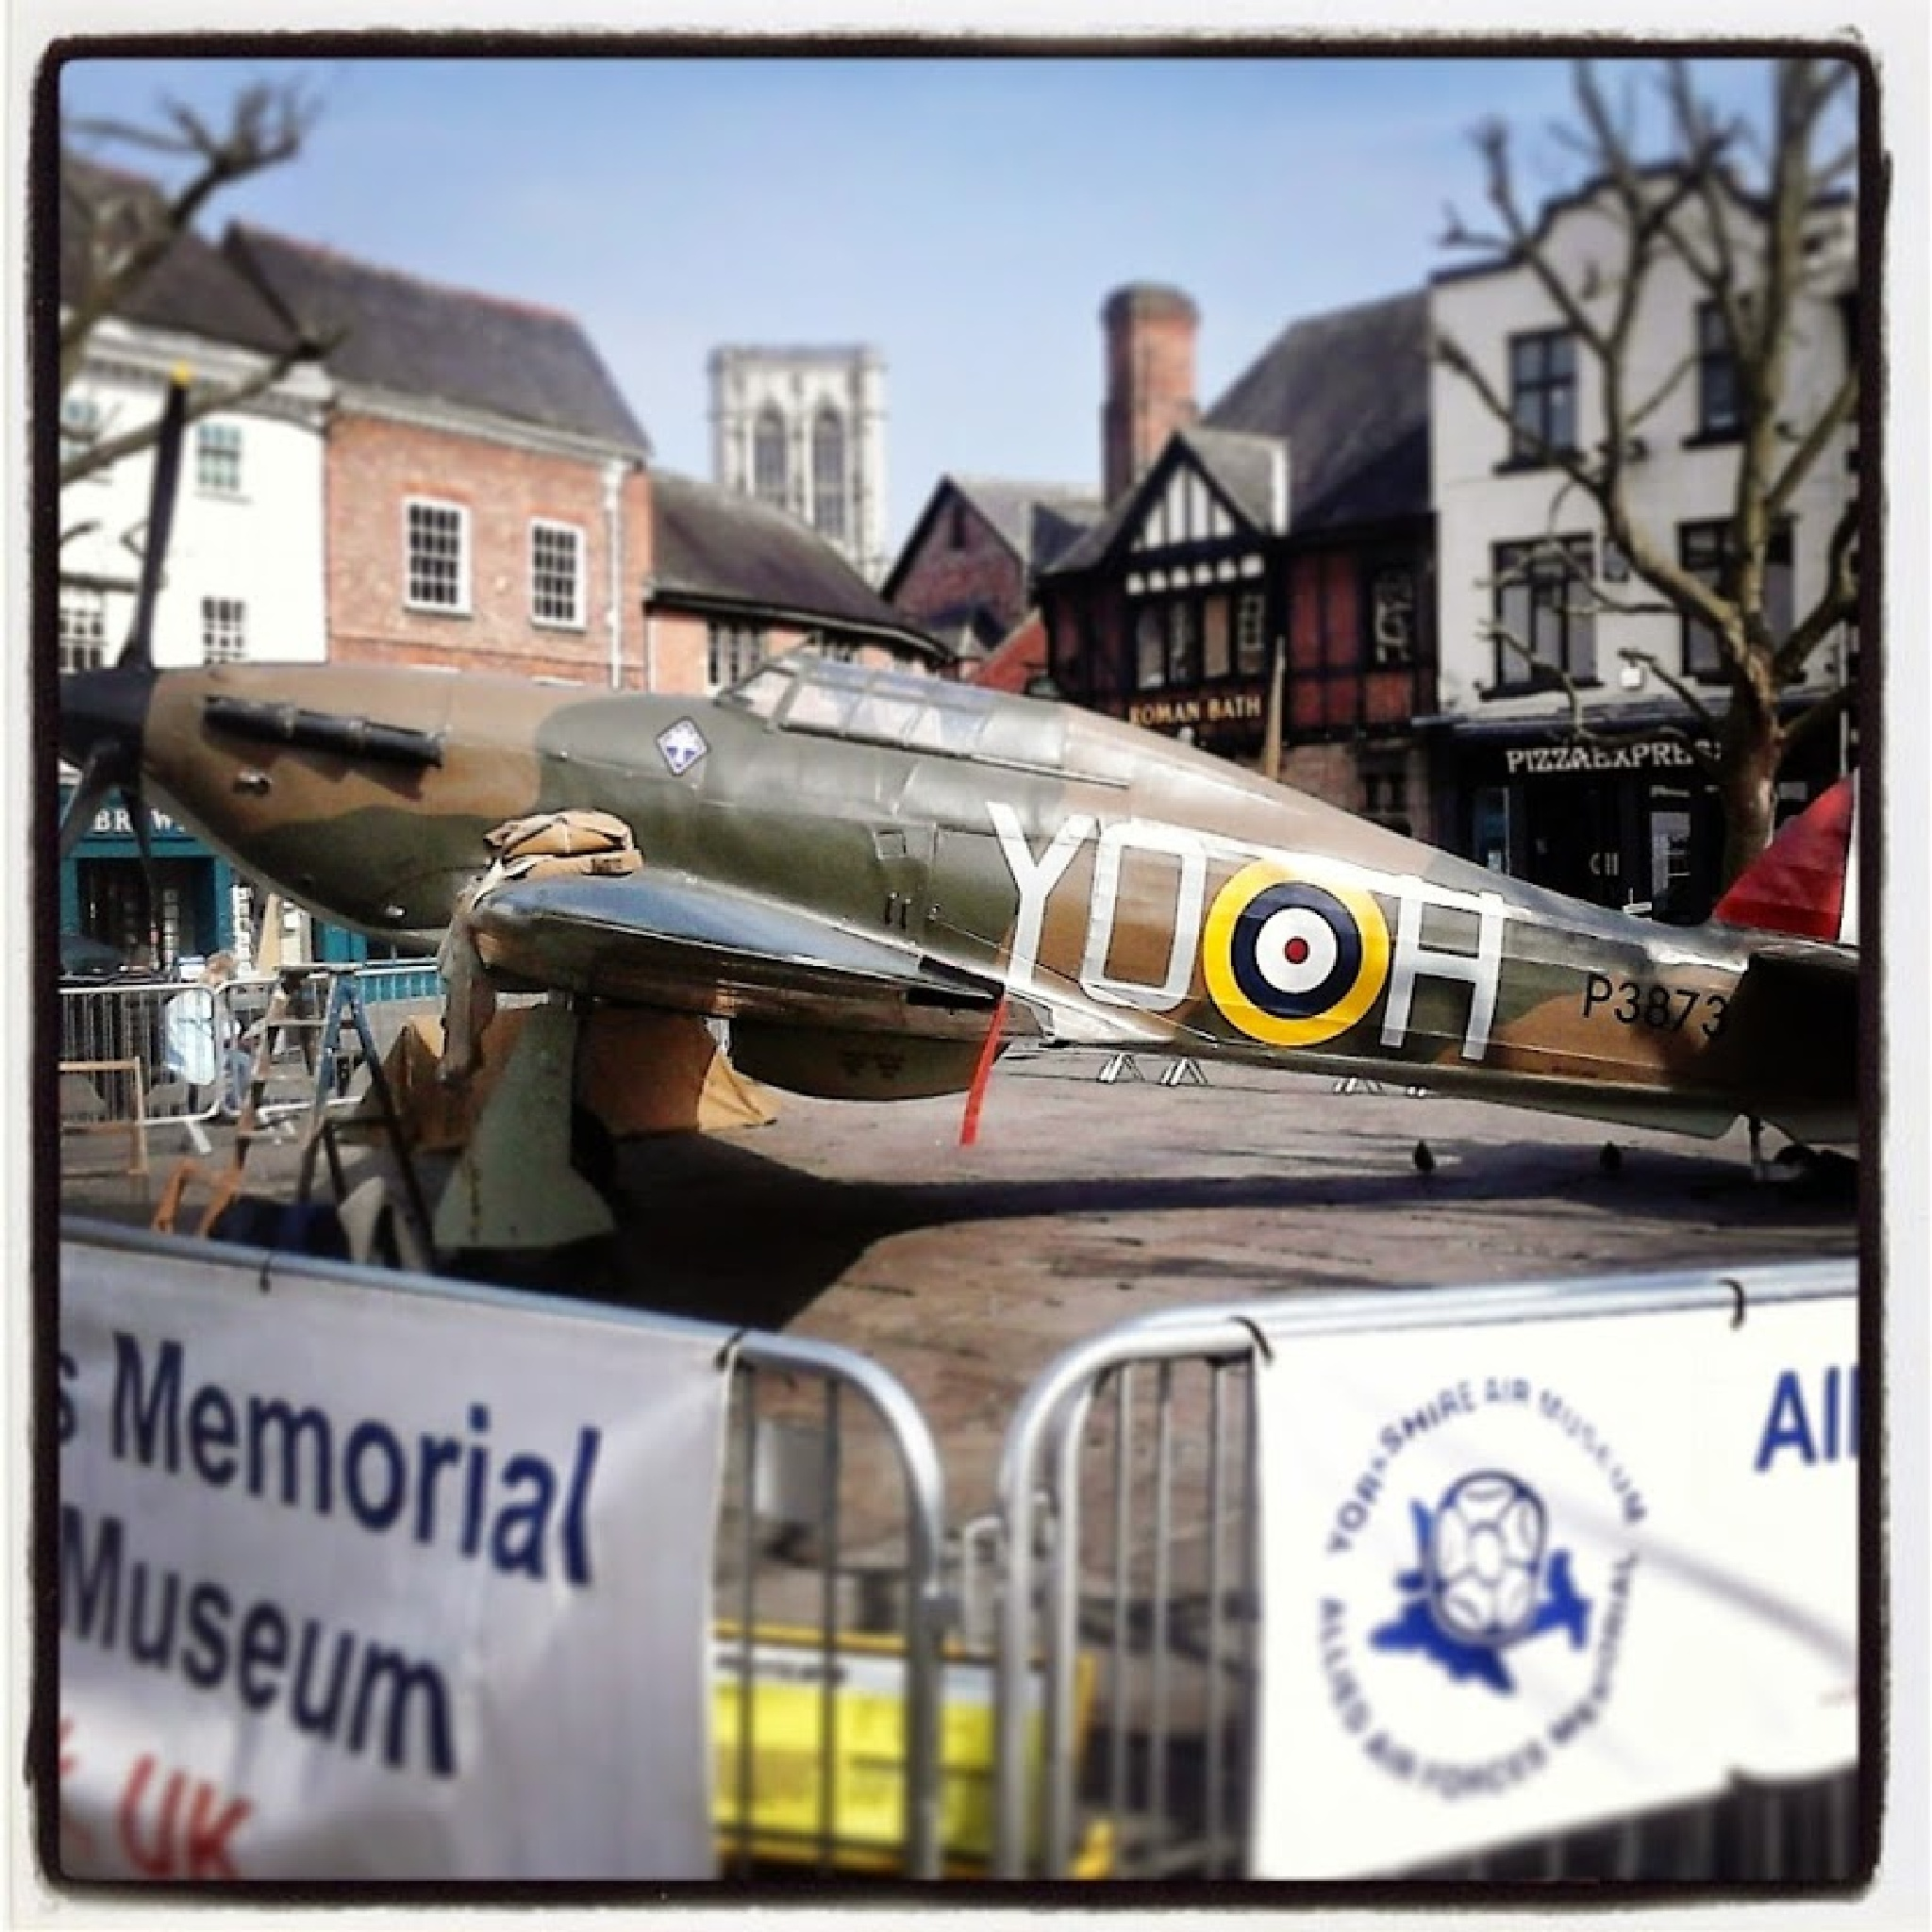 Hurricane in York by Chris Fitzgerald